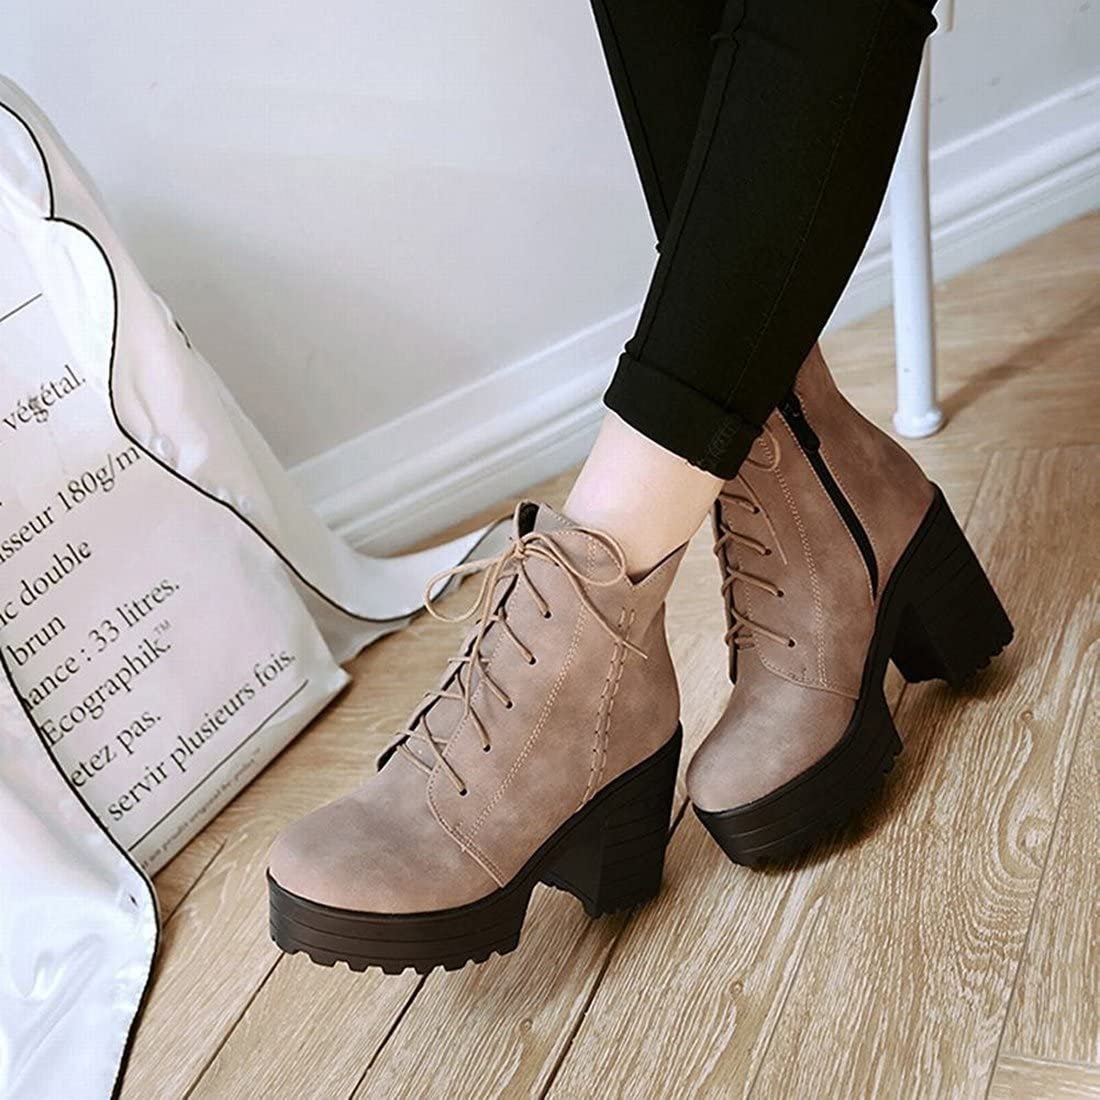 Agodor Womens Platform Lace up High Heels Ankle Boots with Block Heel Retro Shoes